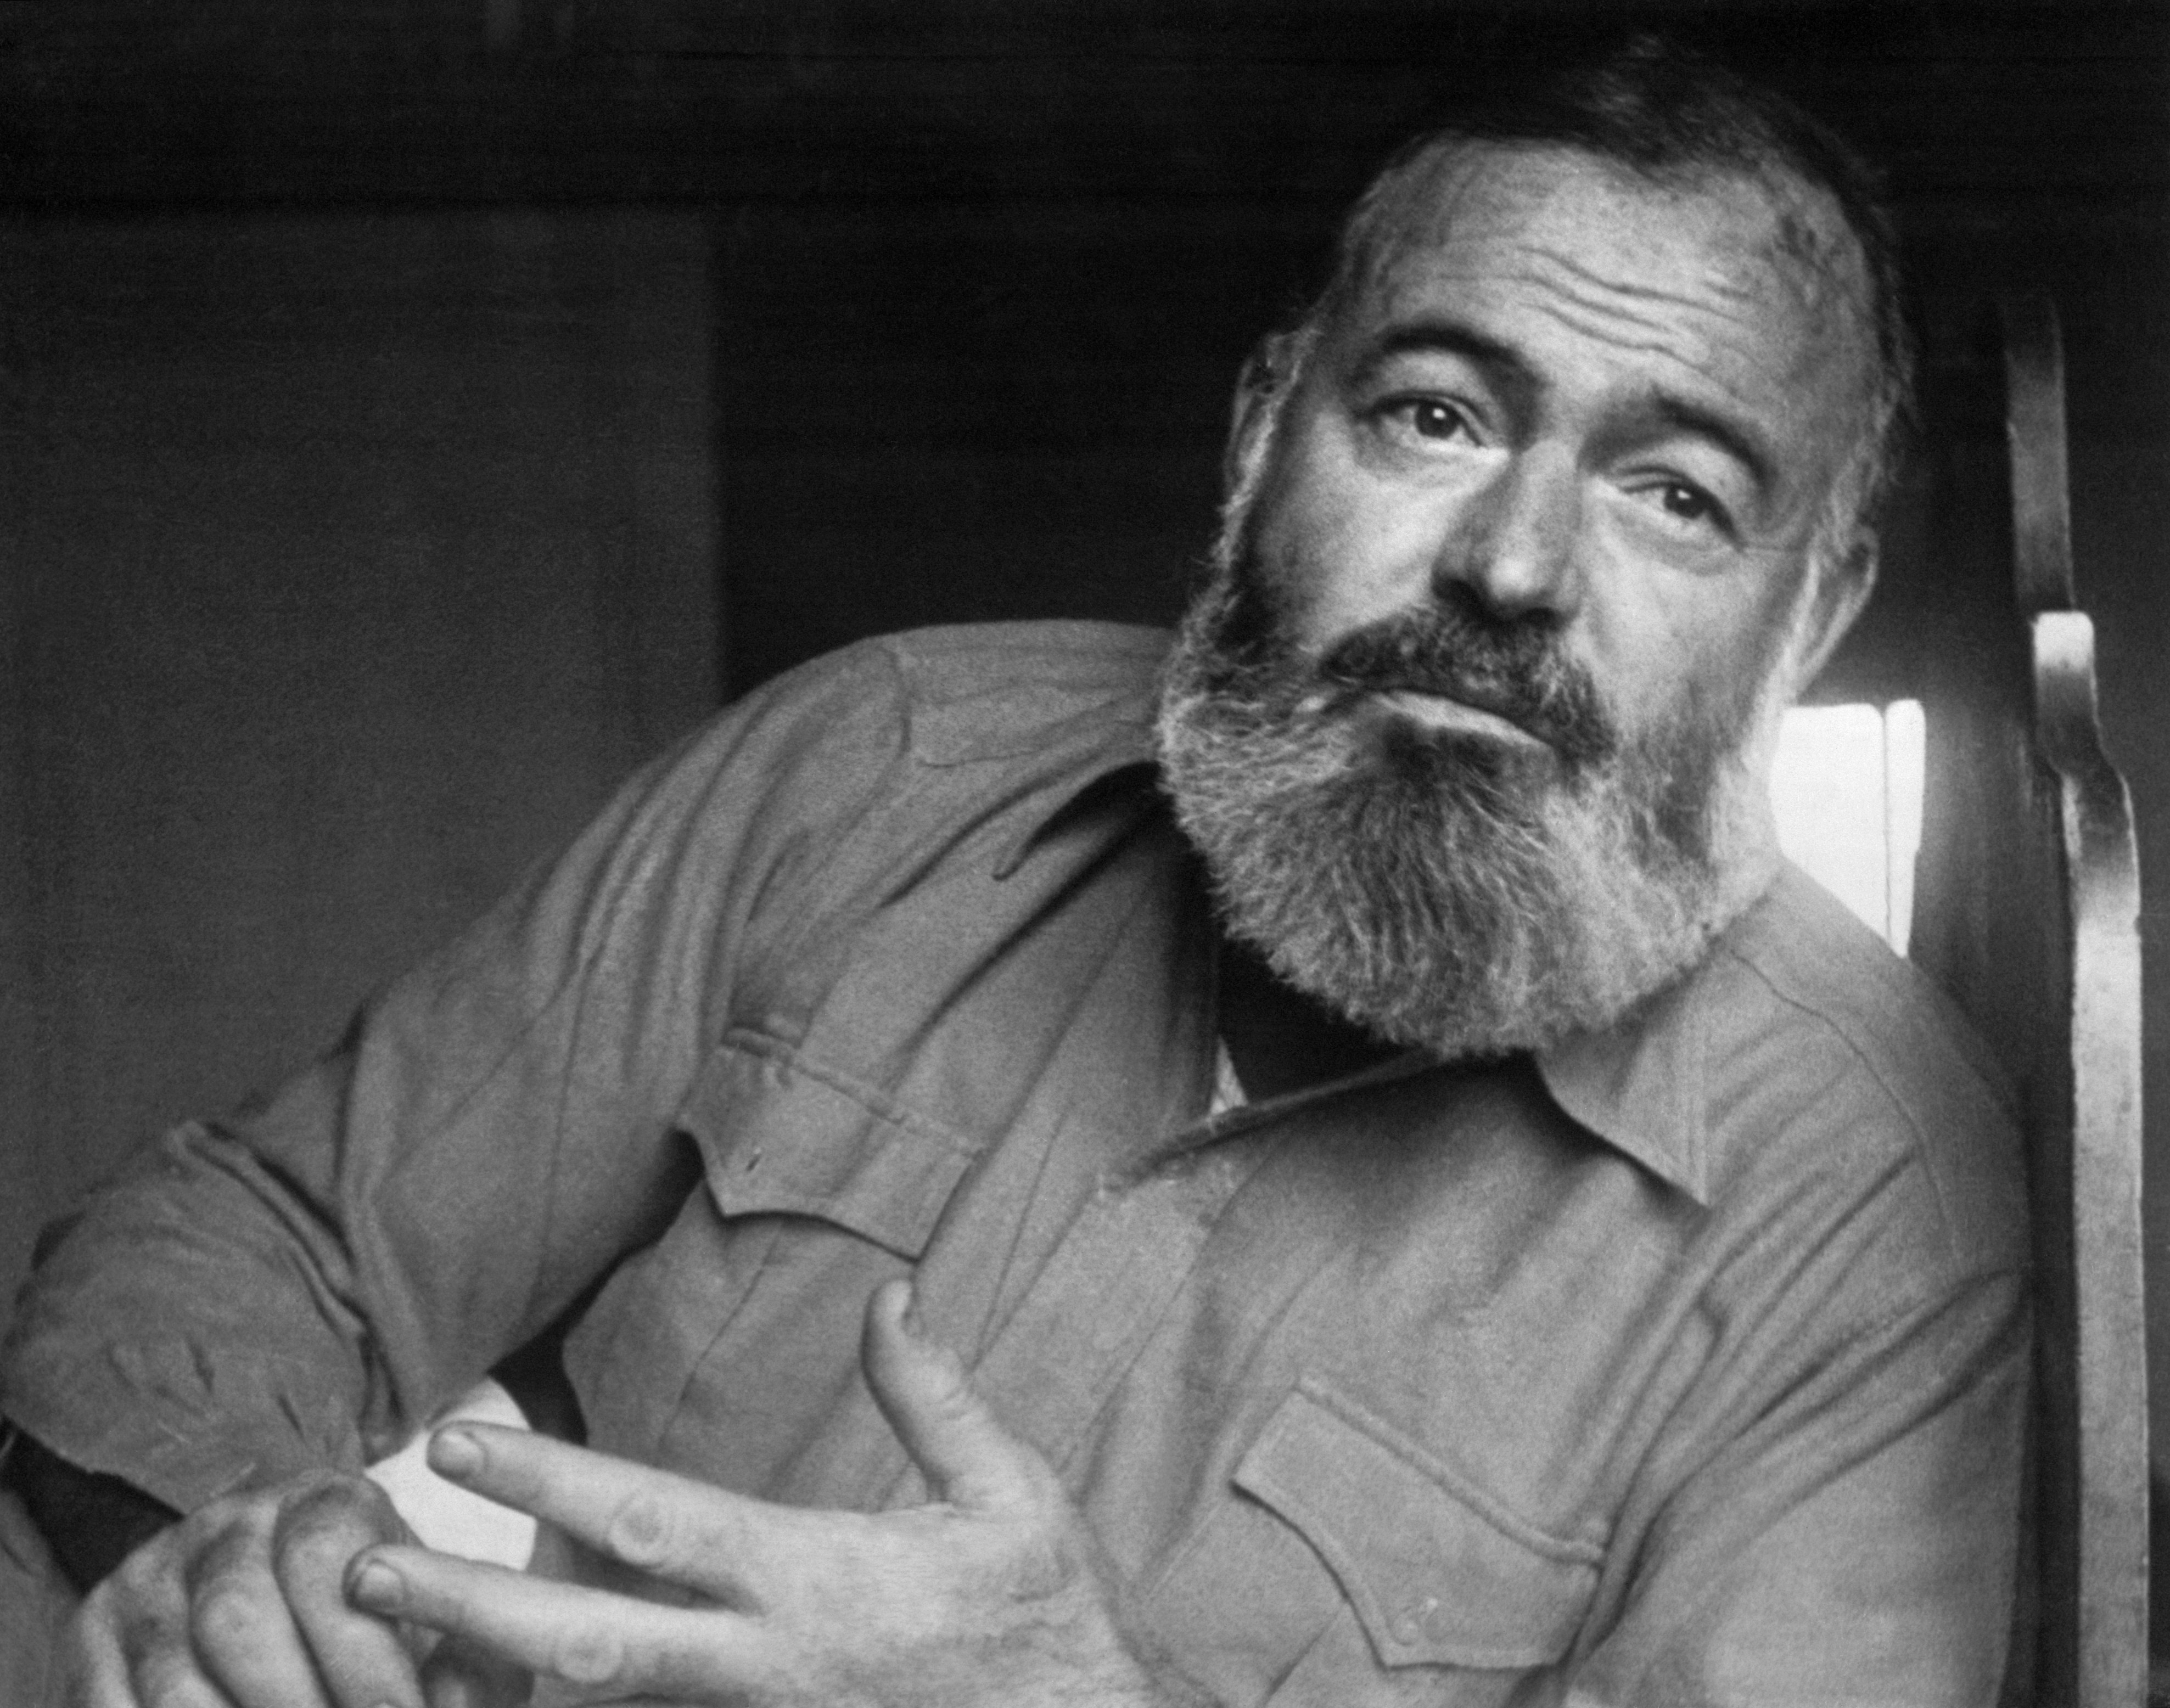 soldiers home ernest hemingway thesis Soldier's home - ernest hemingway 3/4/2013 0 comments this week we will be starting american modernism - and what greater way to start than with one of the most revered american authors - ernest hemingway.